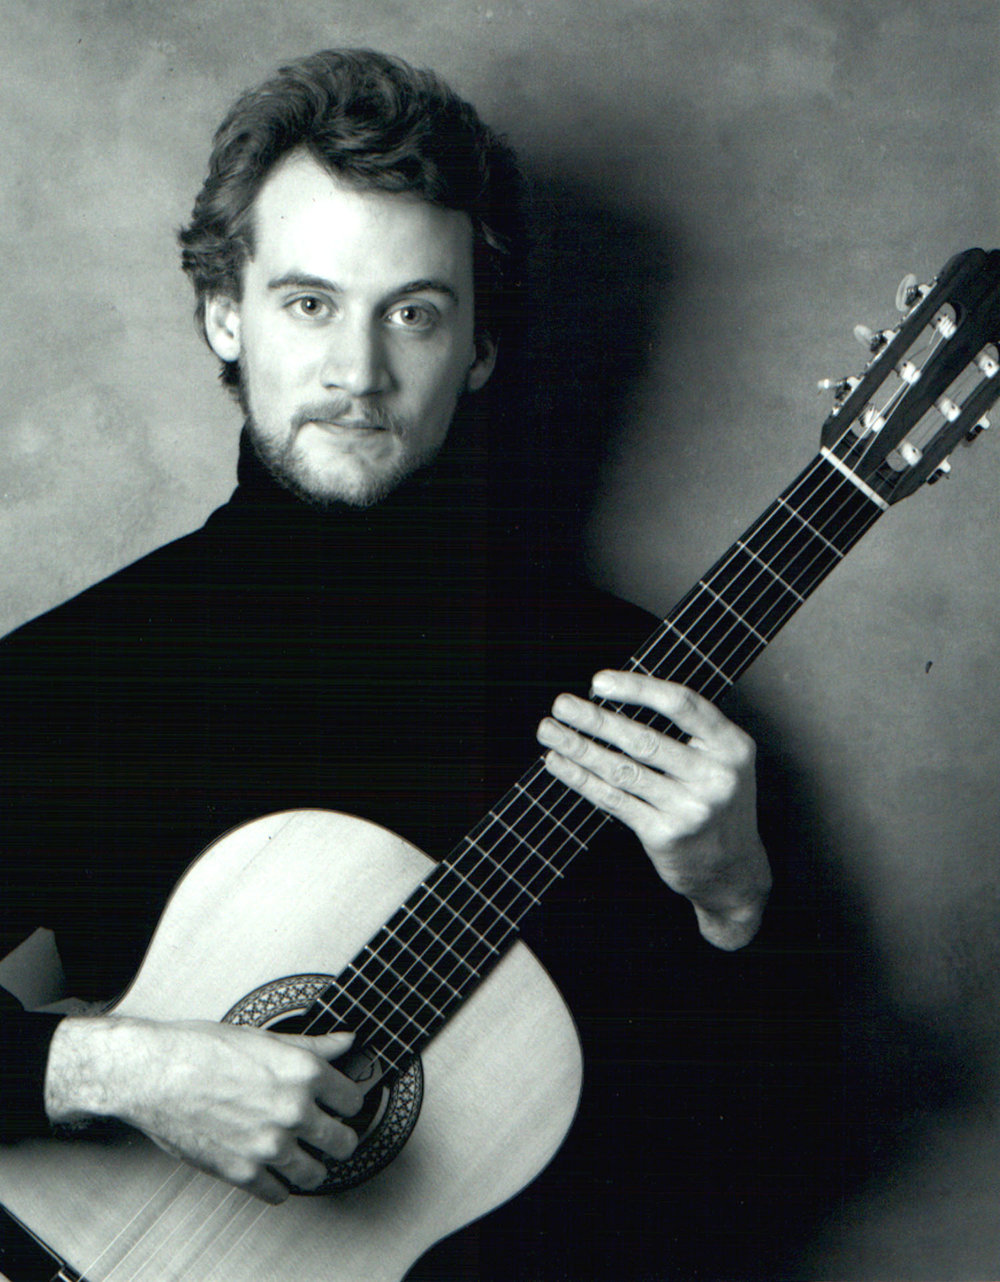 duo_tenebroso_david_franzen_young_classical_guitar.jpg